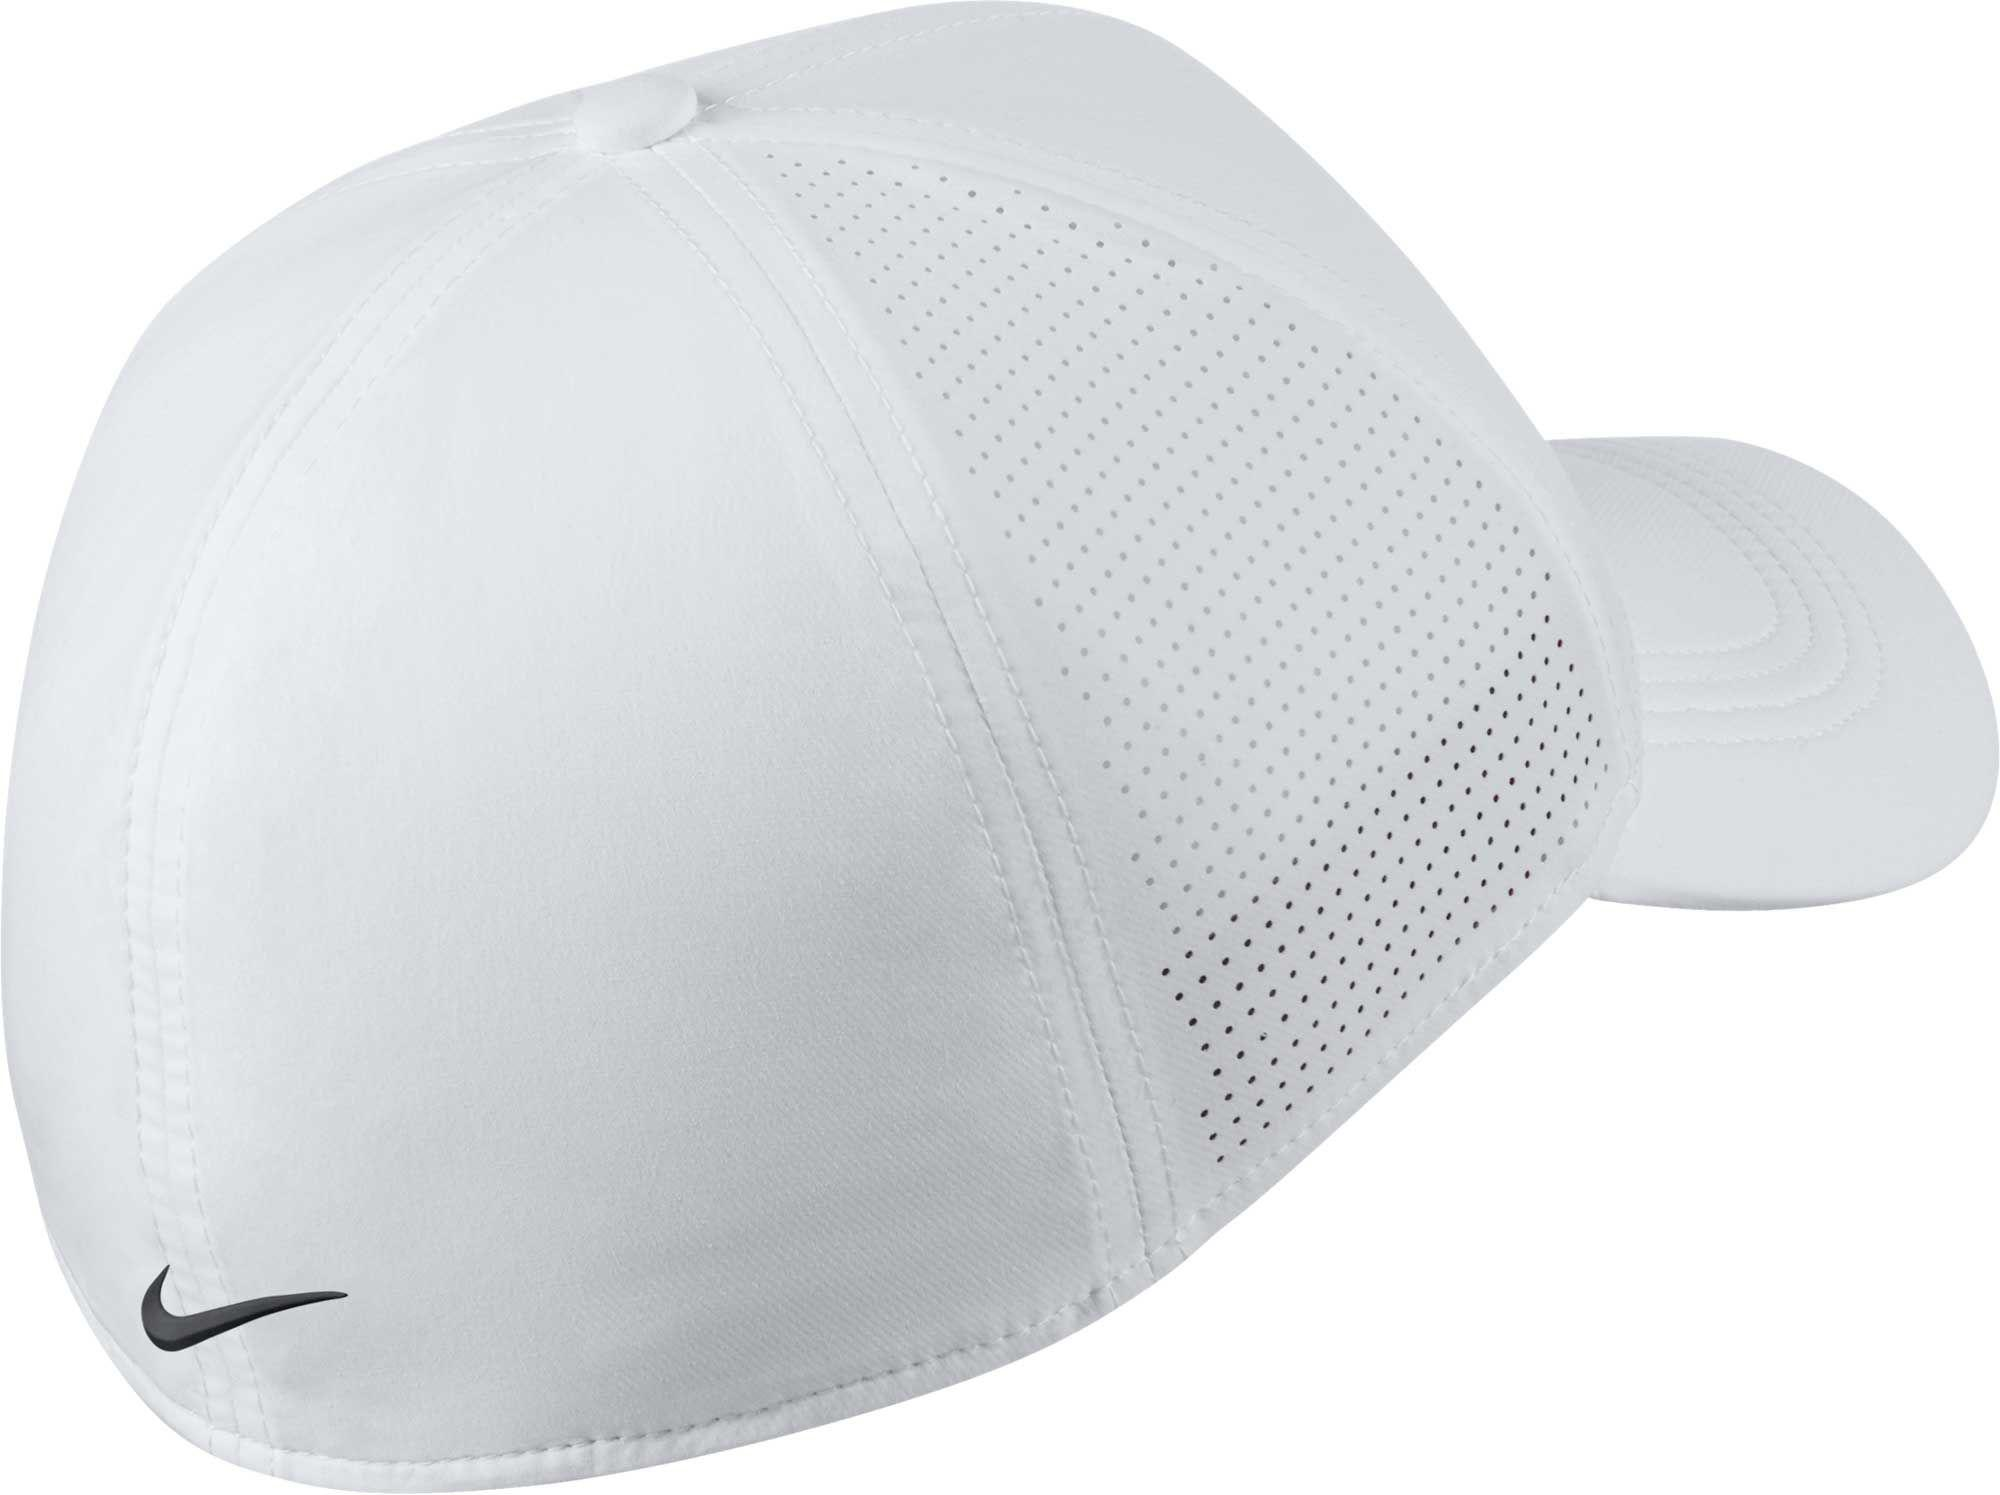 55178b95 Nike 2018 Aerobill Legacy91 Perforated Golf Hat in White for Men - Lyst